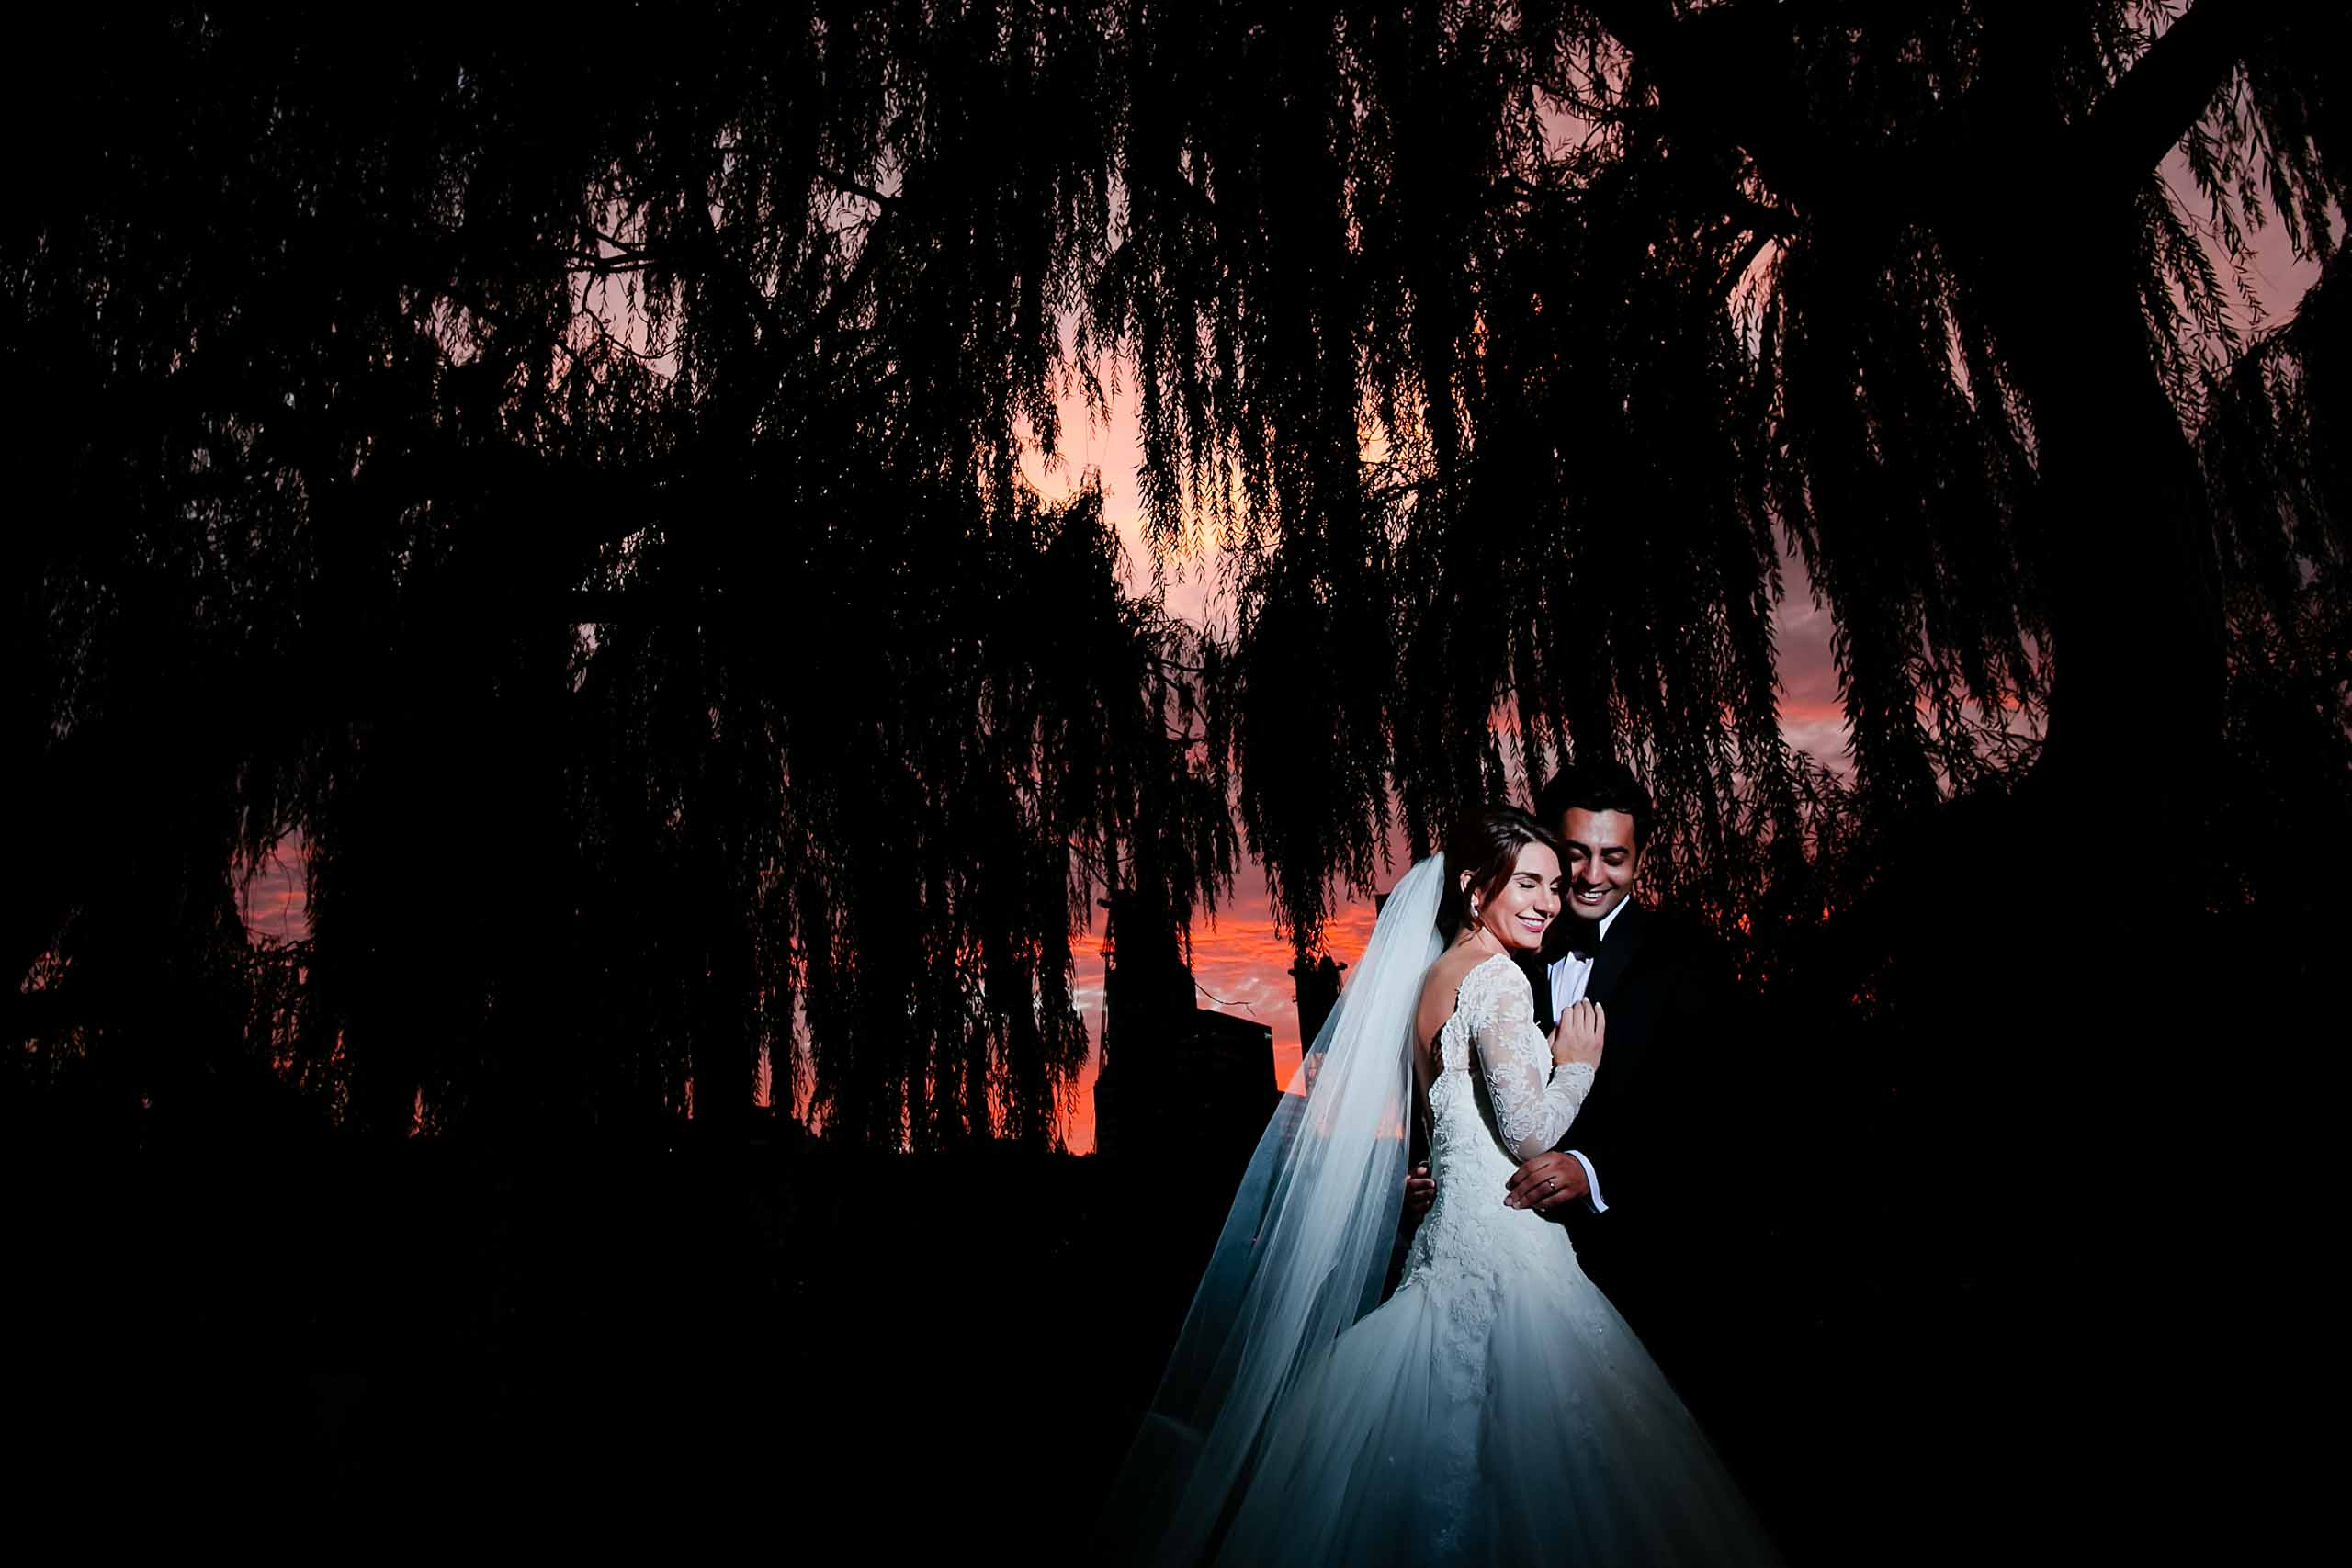 Sunset photo of Portland waterfront and trees with a bride and groom beautifully lit up during their Portland Persian wedding at the Portland Art Museum